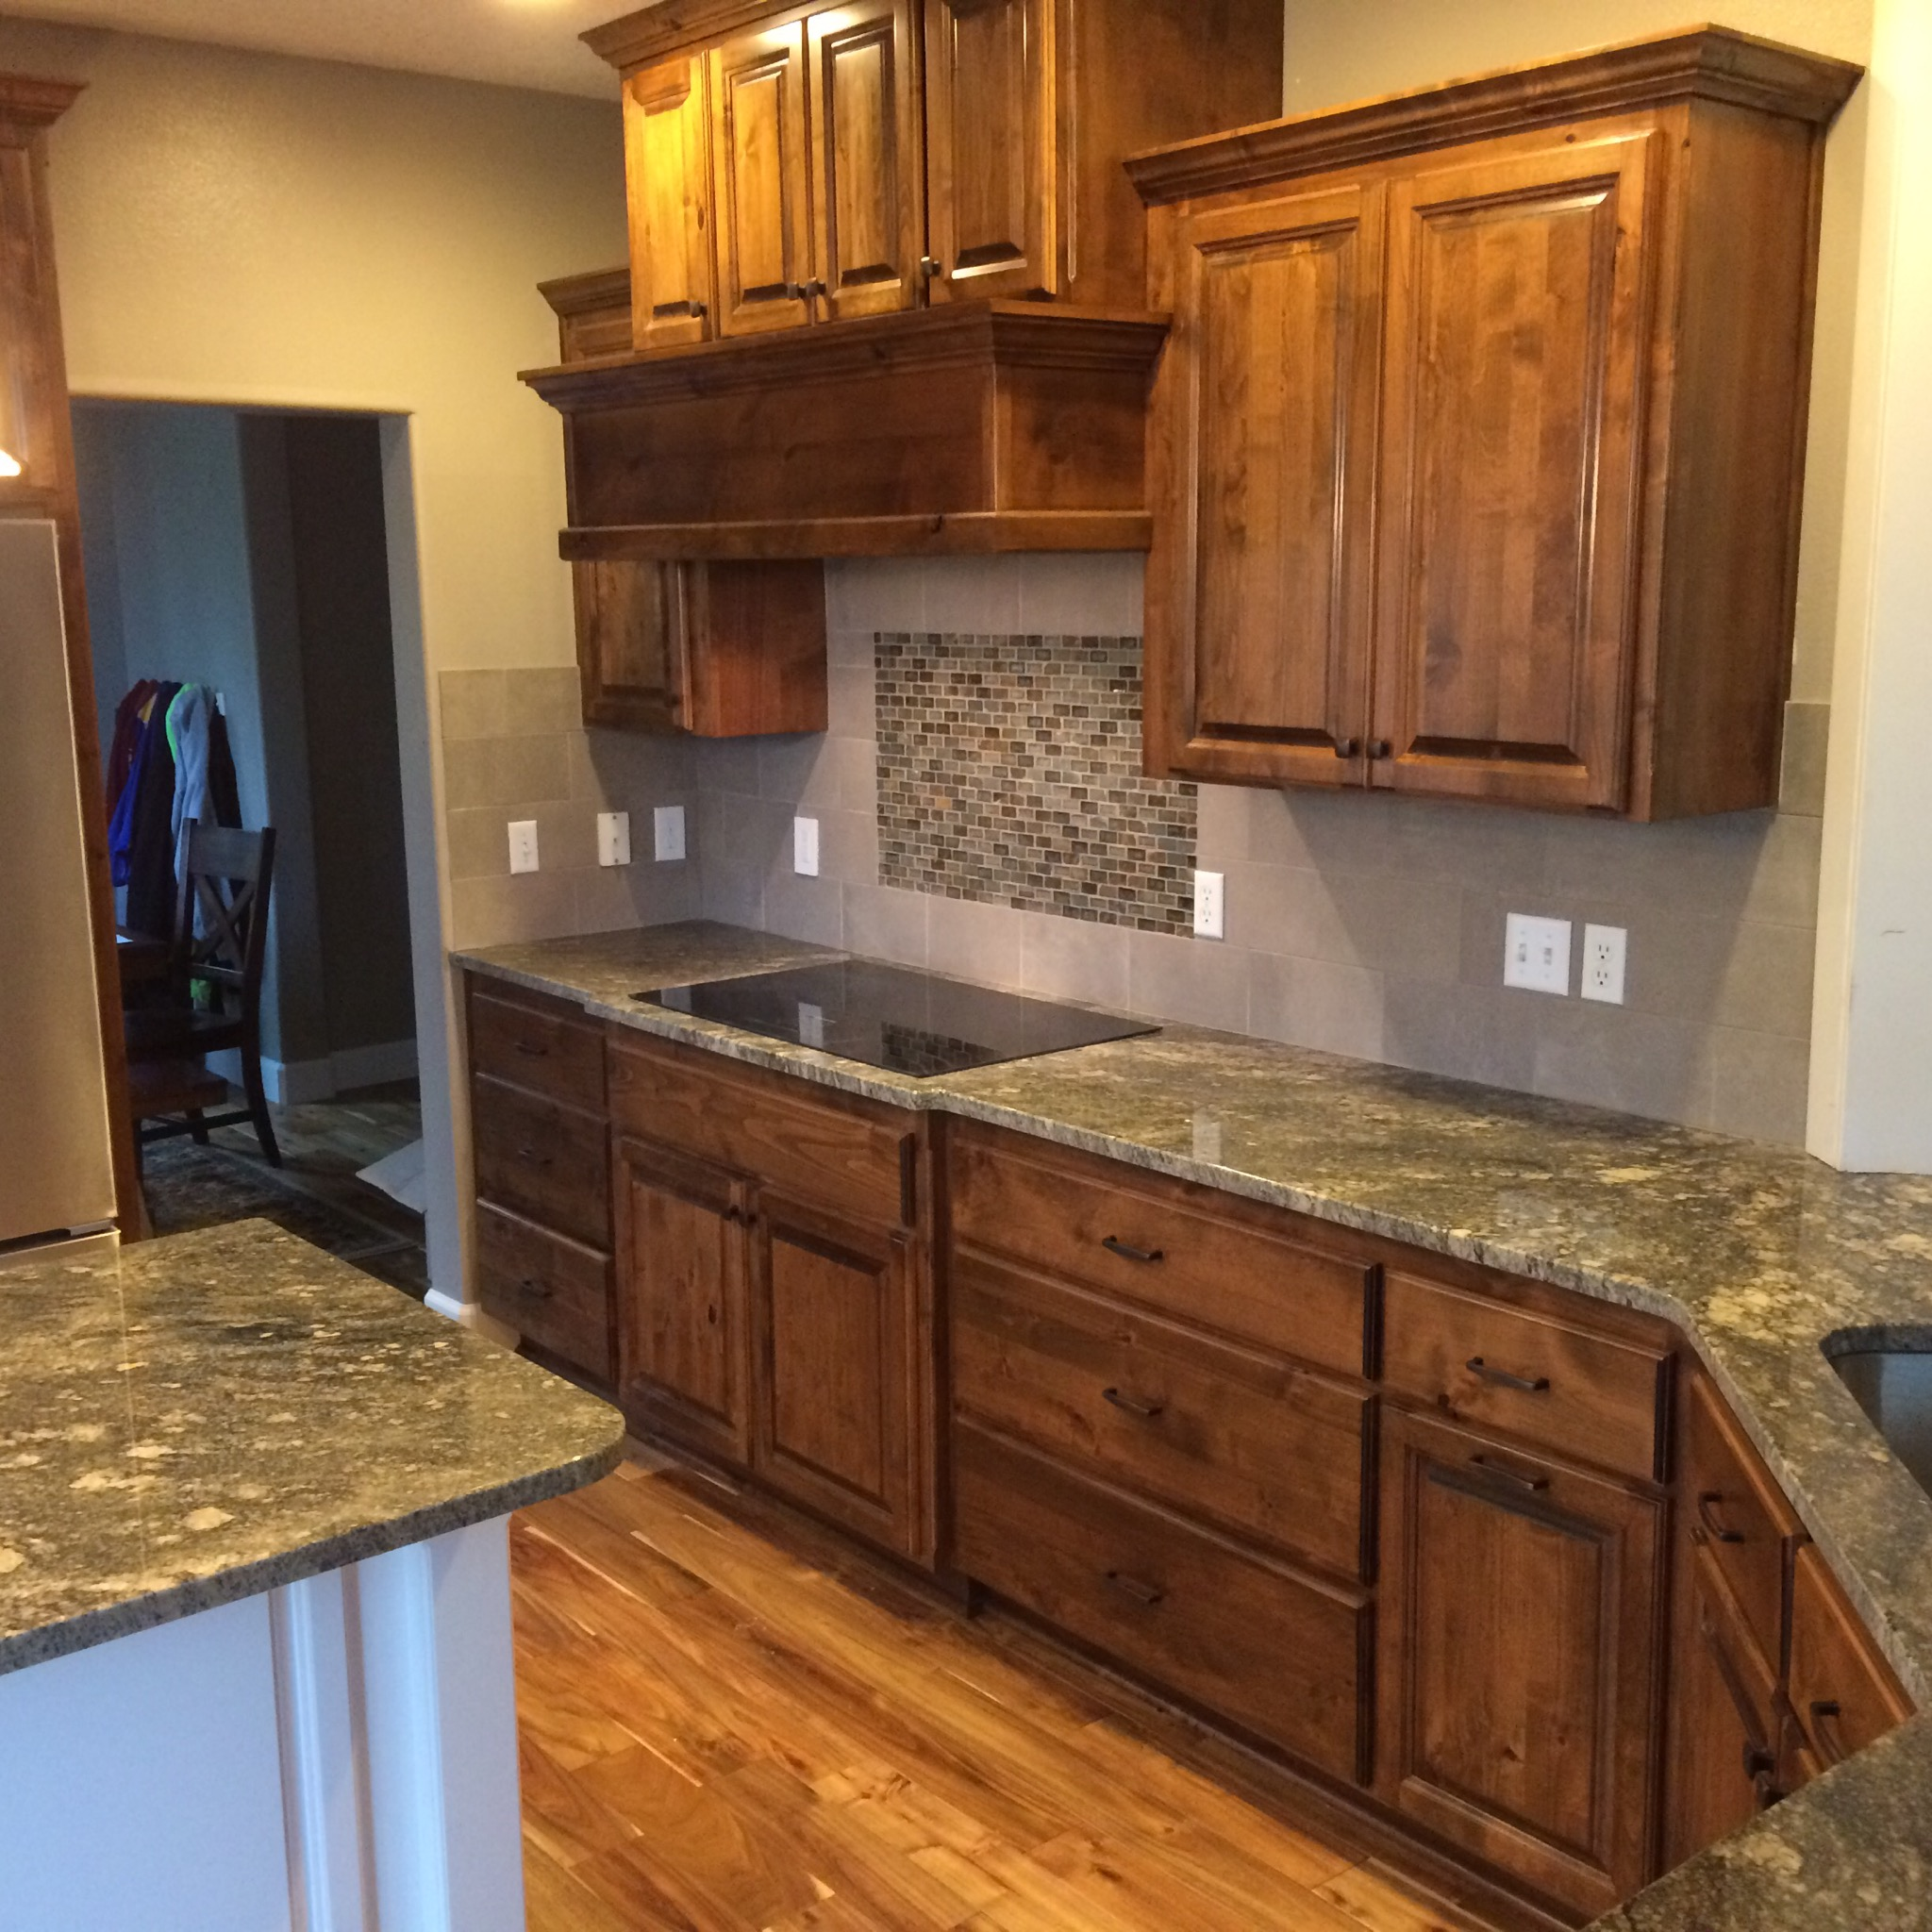 Kitchen Island Using Wall Cabinets Livingston Mt. Kitchen Remodel | Indy Construction, Llc